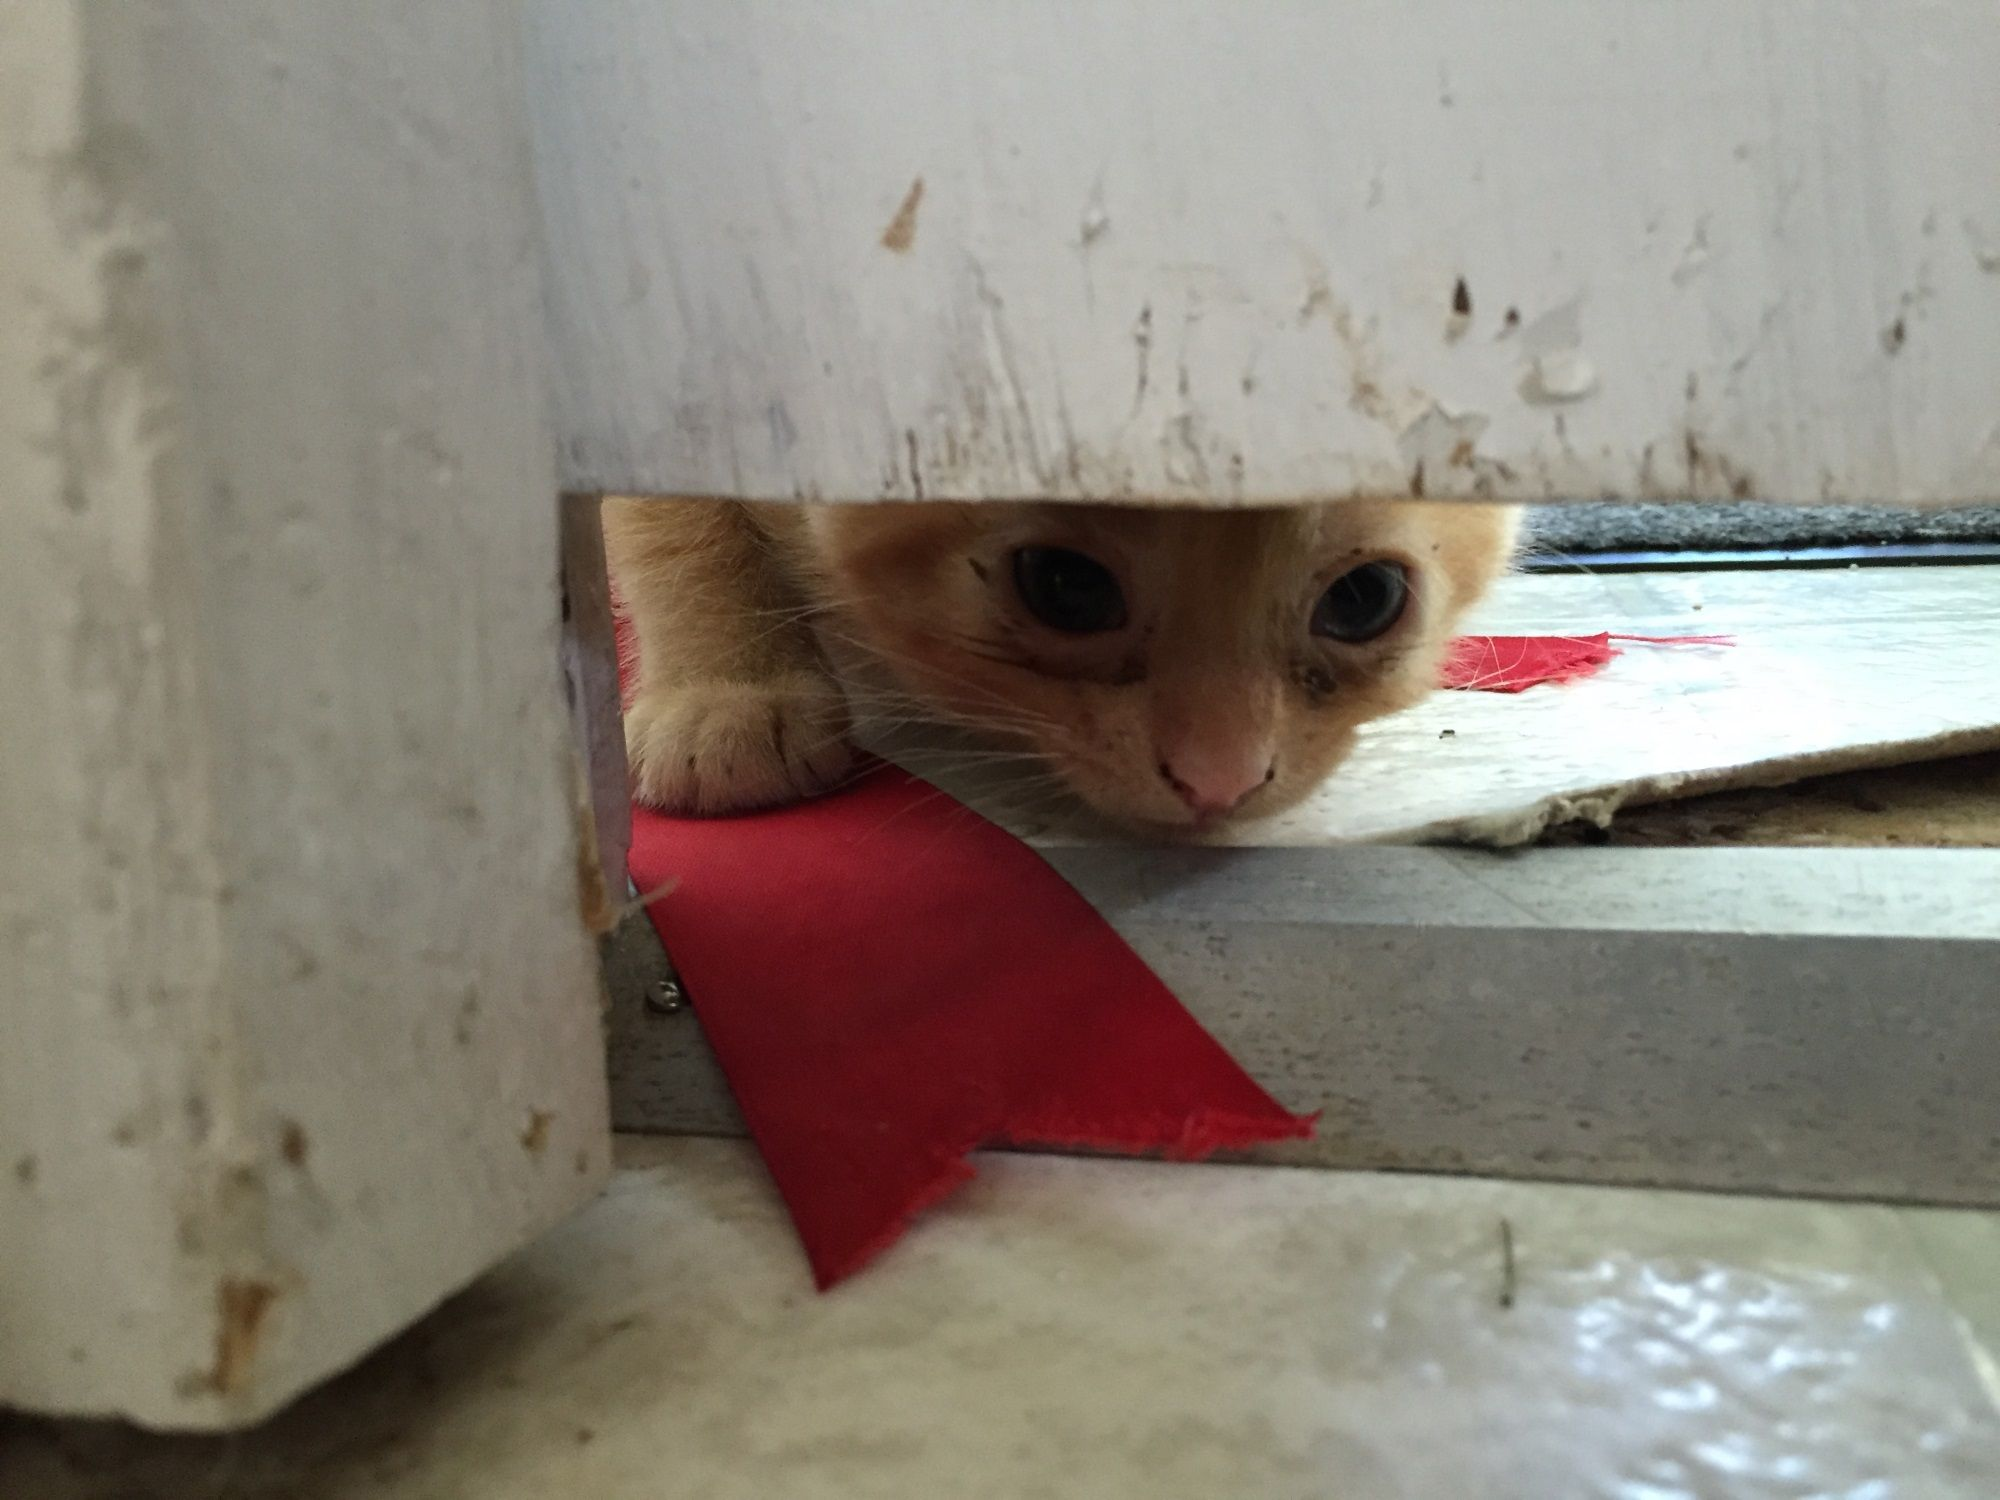 I Can See You Can You See Me Kittens Home Kitten Cats Cat Catsofinstagram Catoftheday Catlover Catstagram Cat Cat Day Cats And Kittens Cat Love